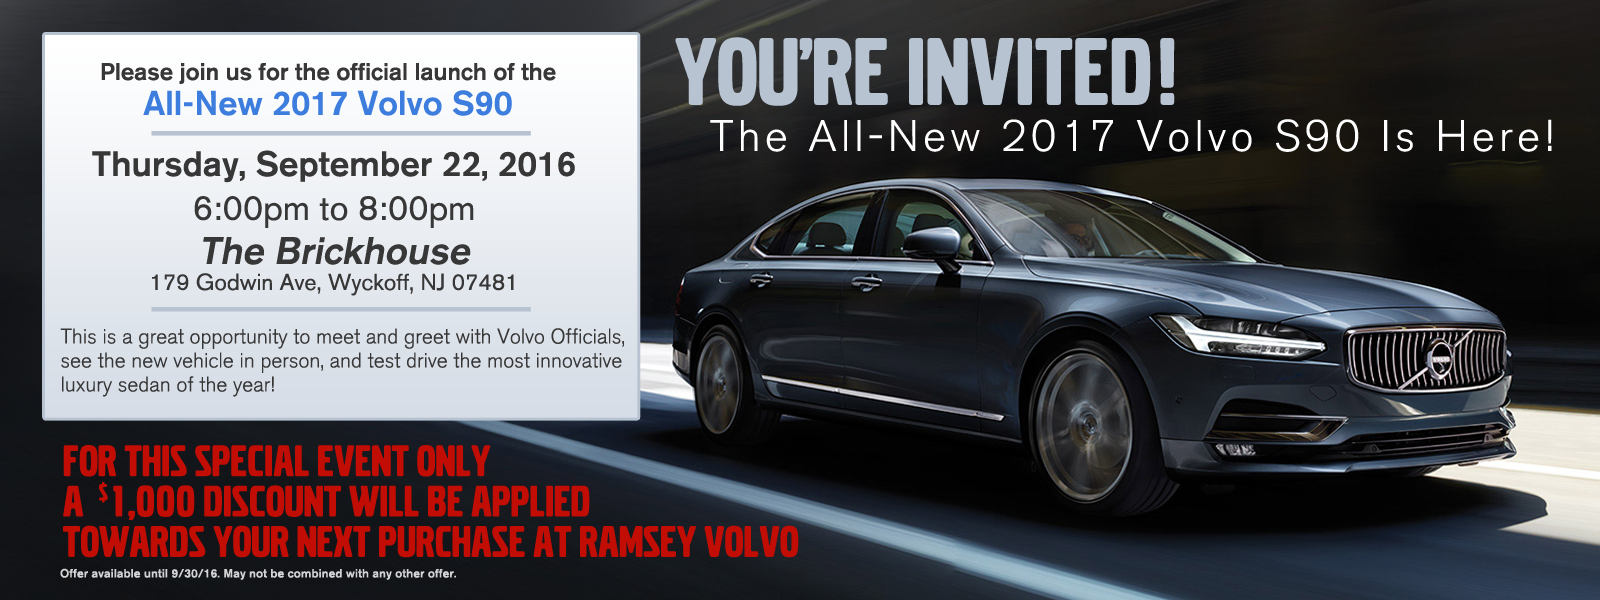 Ramsey Volvo S90 Launch Event